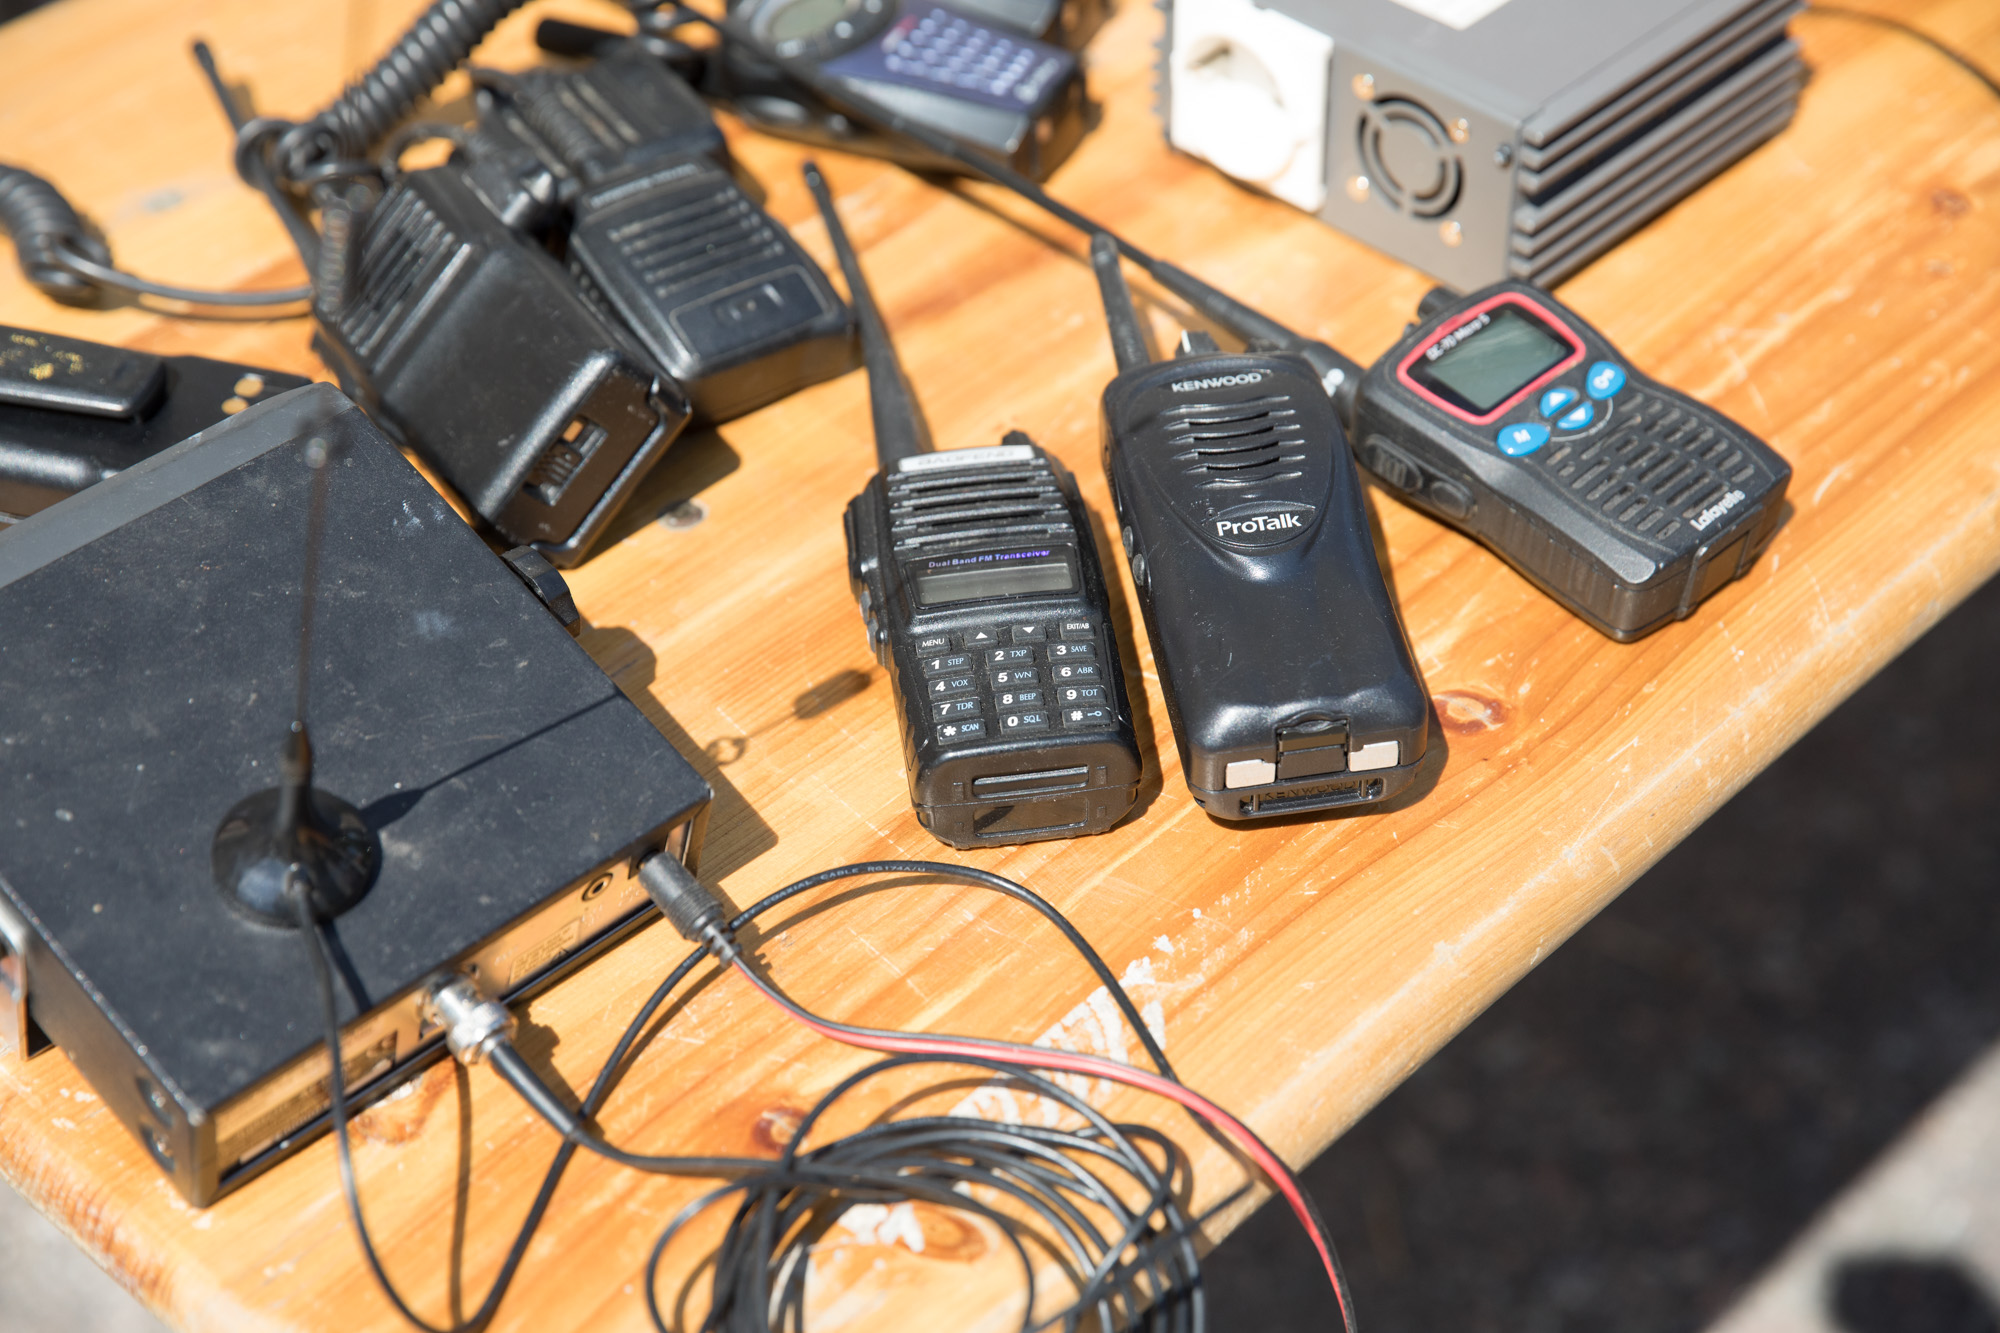 Different kinds of communications equipment